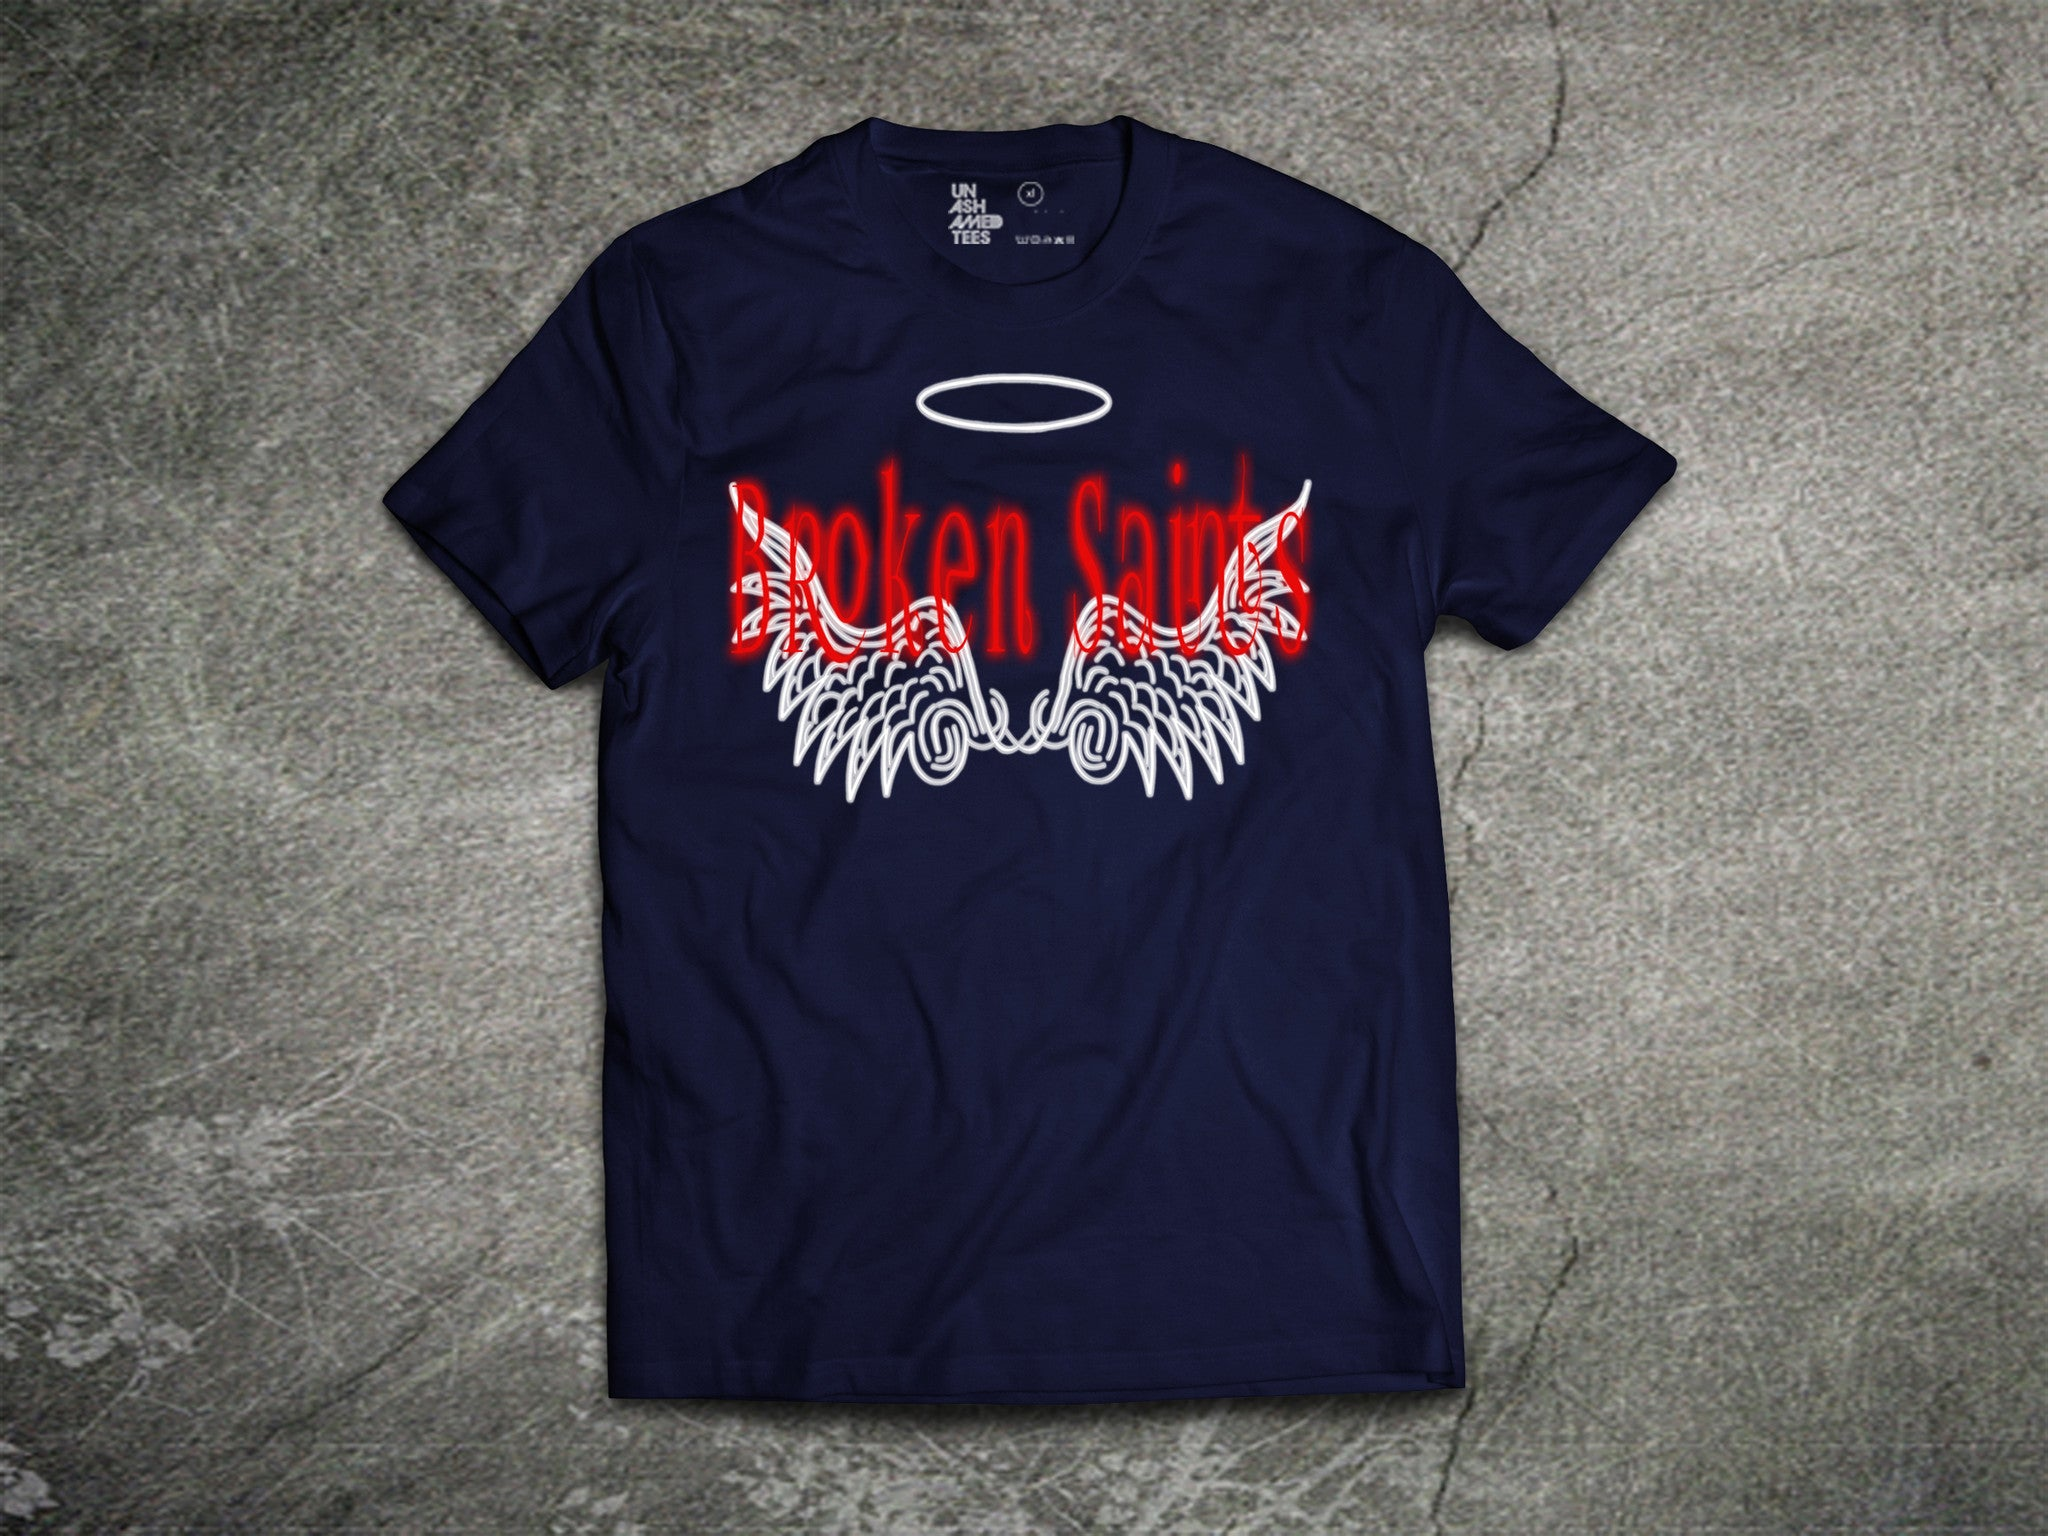 Broken Saints Radiance Tee